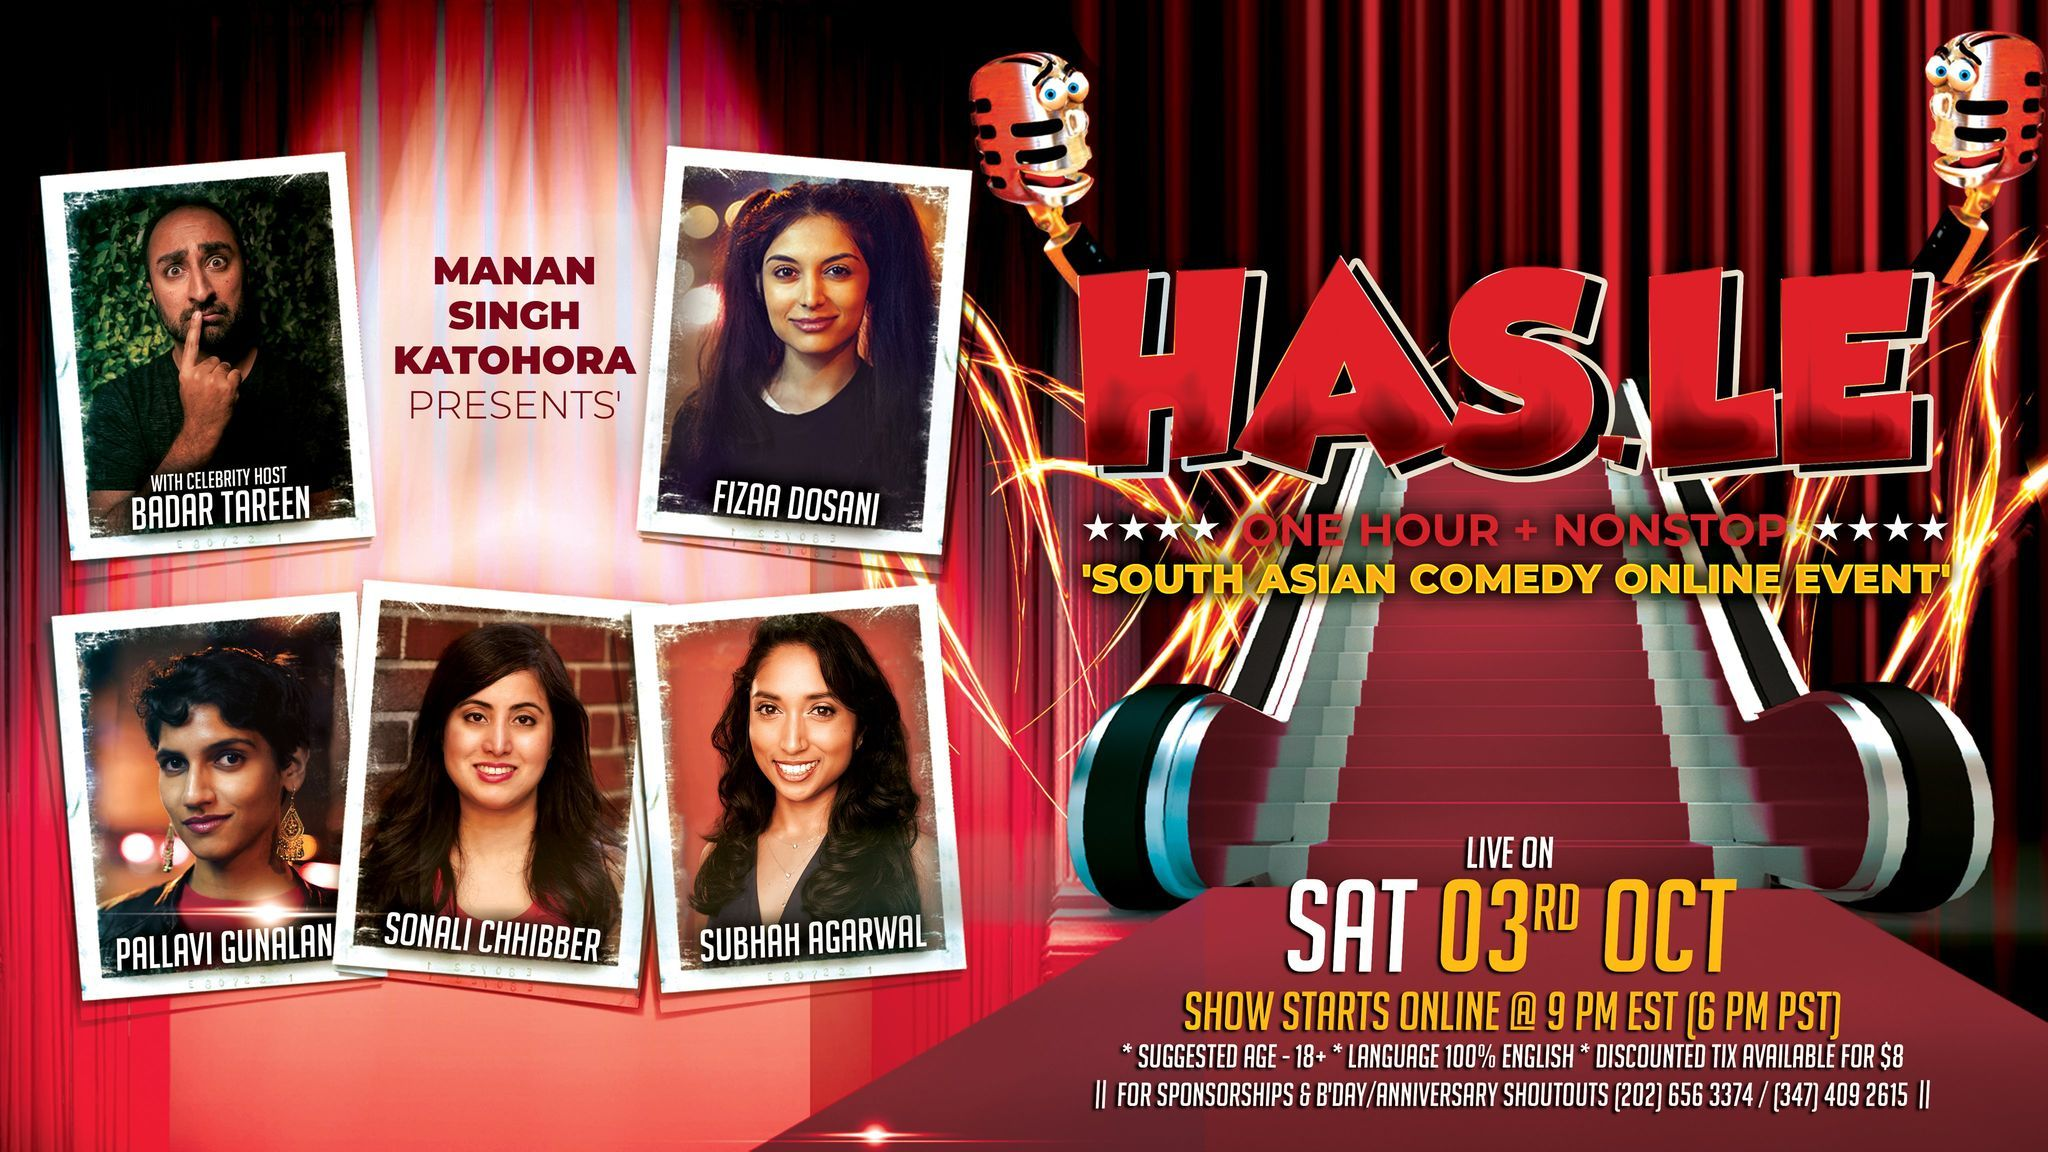 'HAS.LE' - (One Hour+ Nonstop) South Asian Comedy ONLINE Event FEATURING 5 Celebrity Comedians -- 'Fizaa Dosani, Pallavi Gunalan, Sonali Chhibber, Subhah Agarwal, and HOST Badar Tareen'